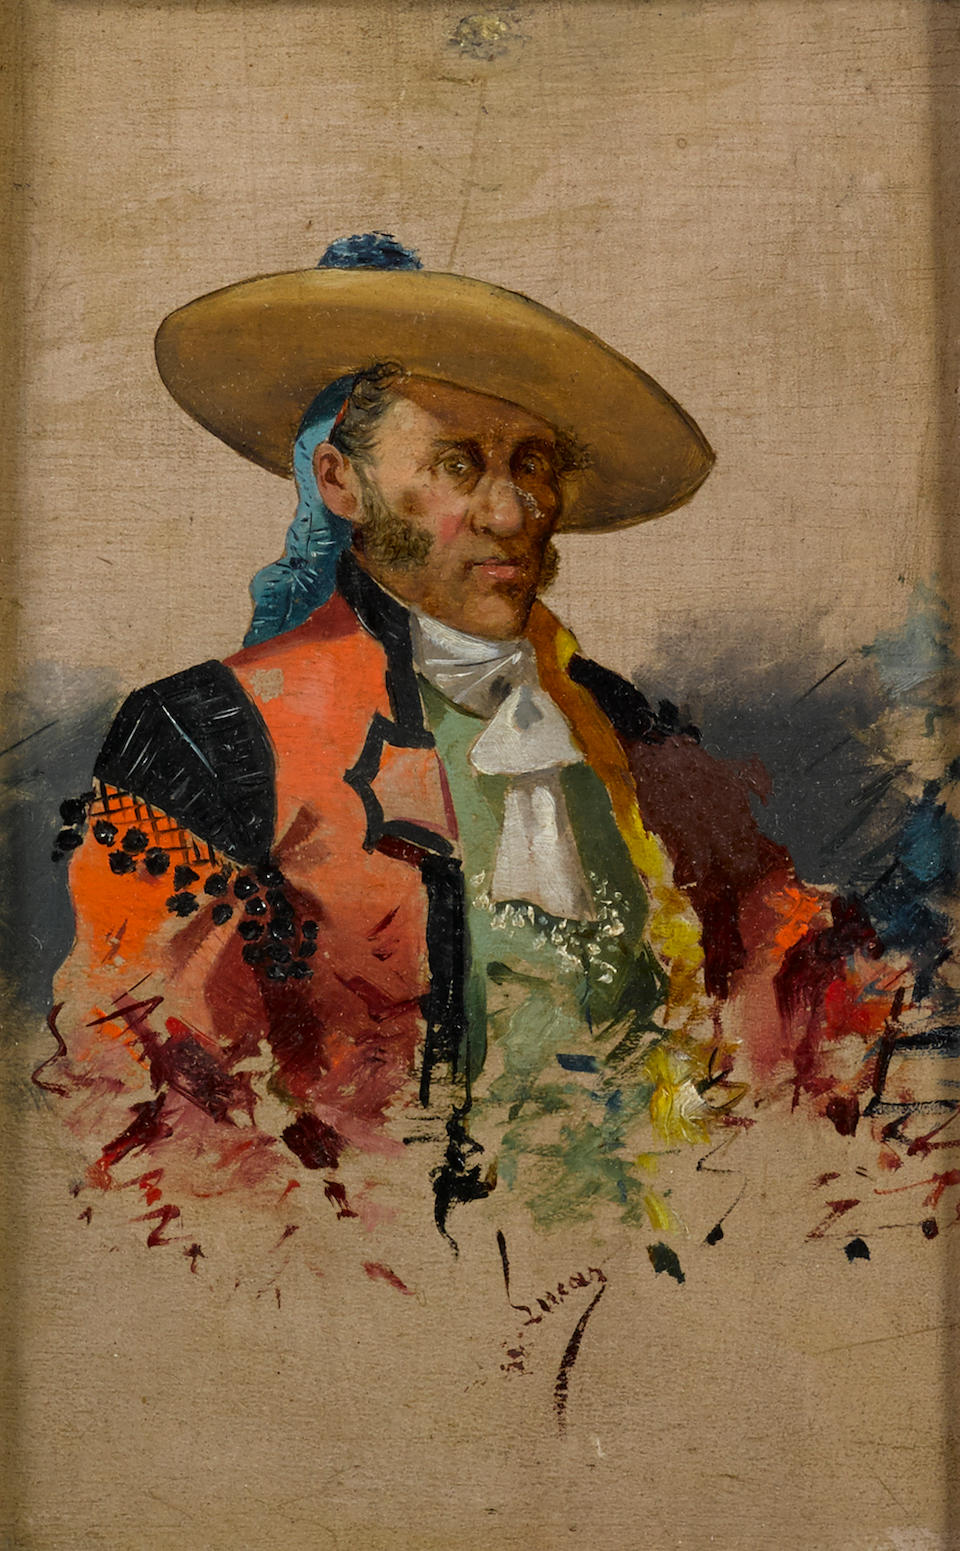 Eugenio Lucas Villamil (Spanish, 1858-1918) A portrait of a bullfighter; also a companion portrait (a pair) 6 1/4 x 4 1/4in